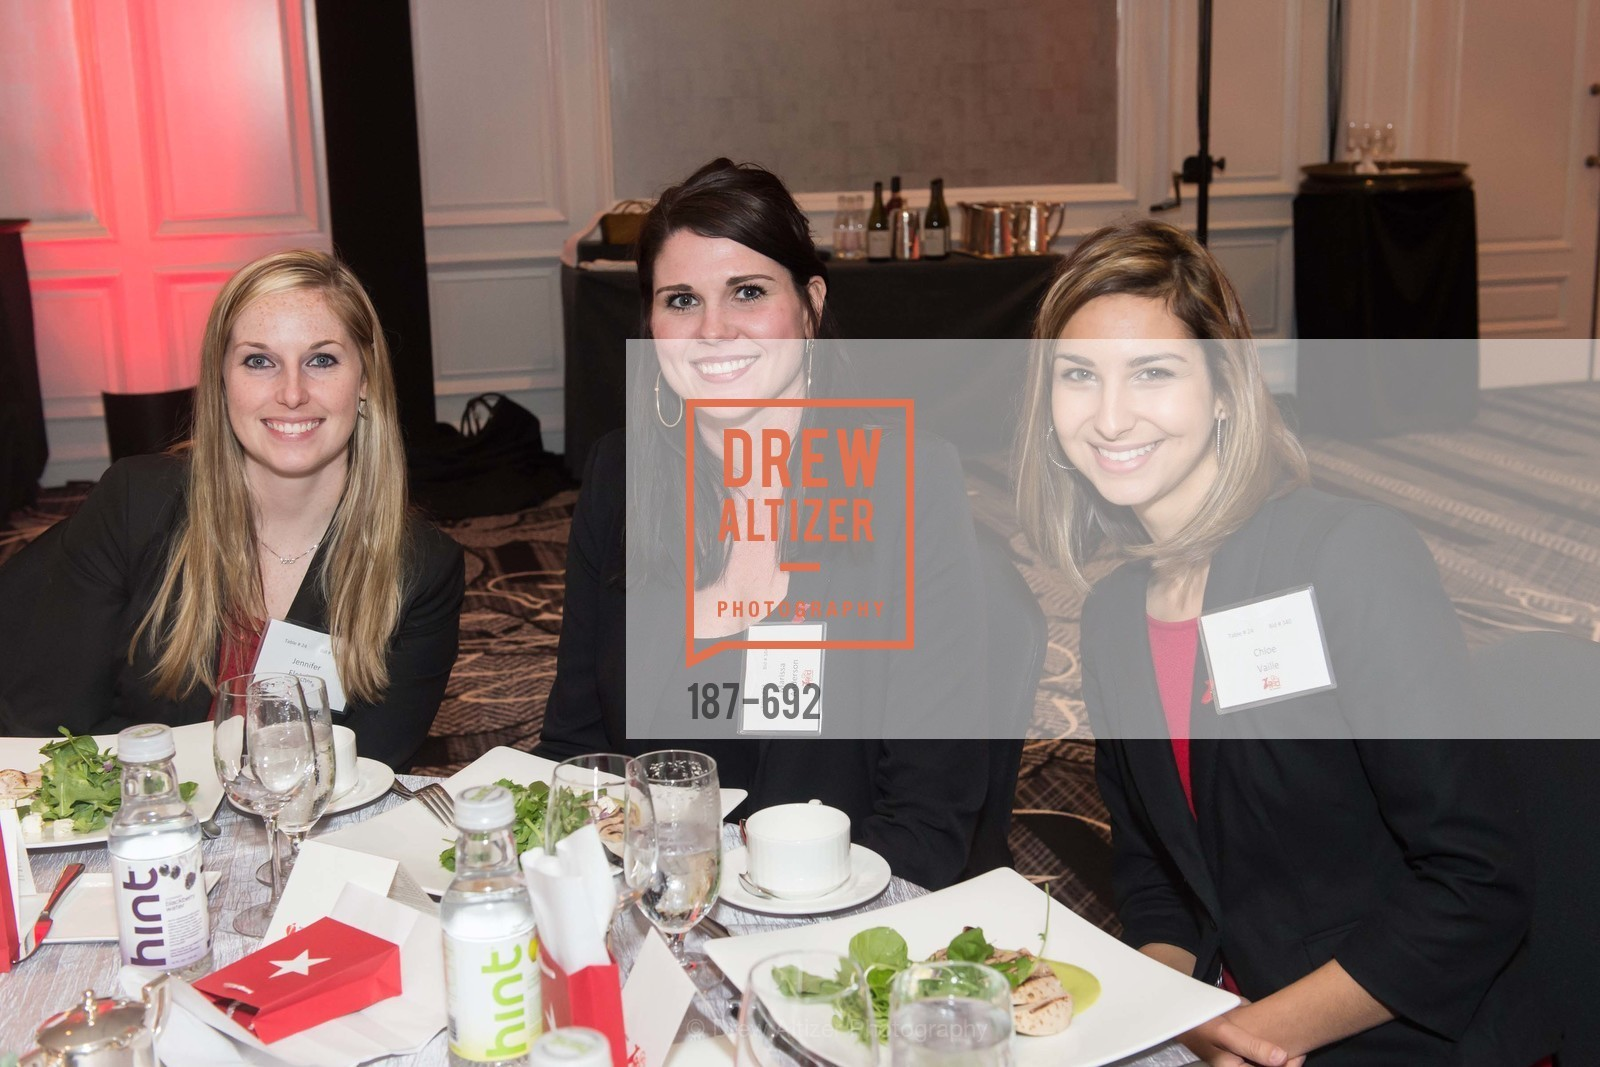 Jennifer Fletcher, Marissa Anderson, Chloe Vaille, 2015 GoRed for Women Luncheon, US, May 2nd, 2015,Drew Altizer, Drew Altizer Photography, full-service agency, private events, San Francisco photographer, photographer california